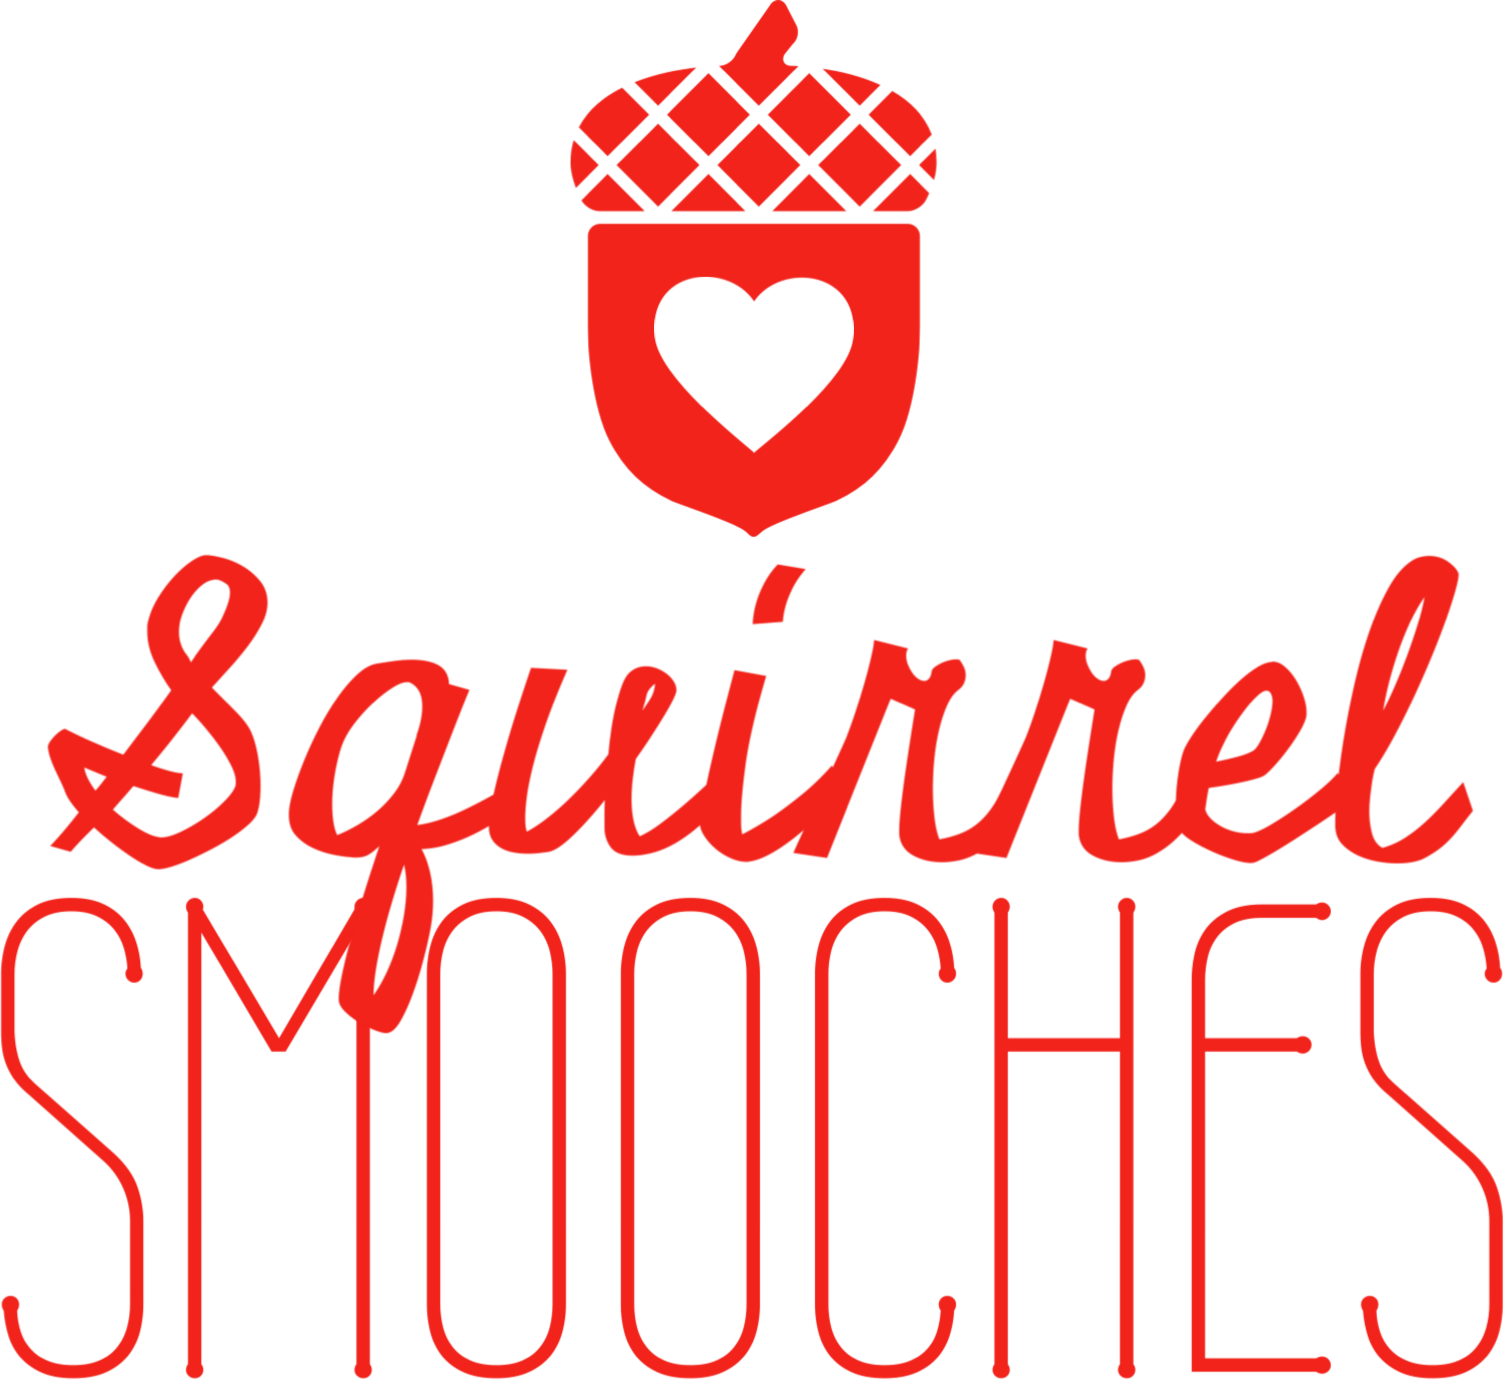 Squirrel Smooches